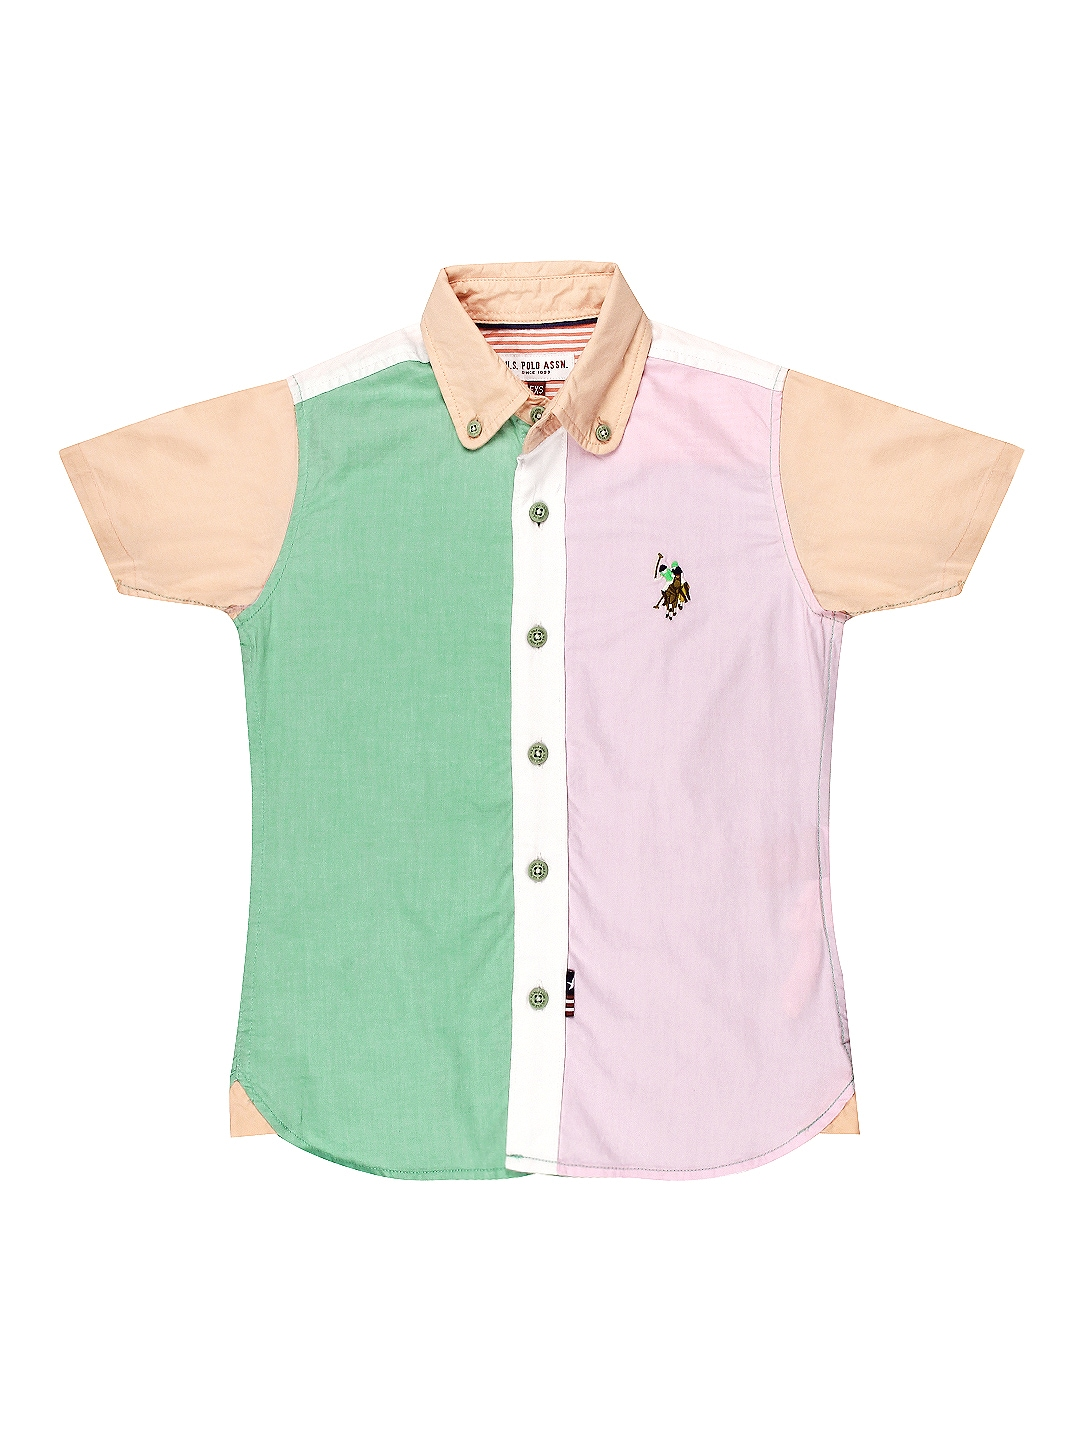 53871a2bd5e Us polo assn ujsh5434 Kids Boys Multi Coloured Shirt - Best Price in ...